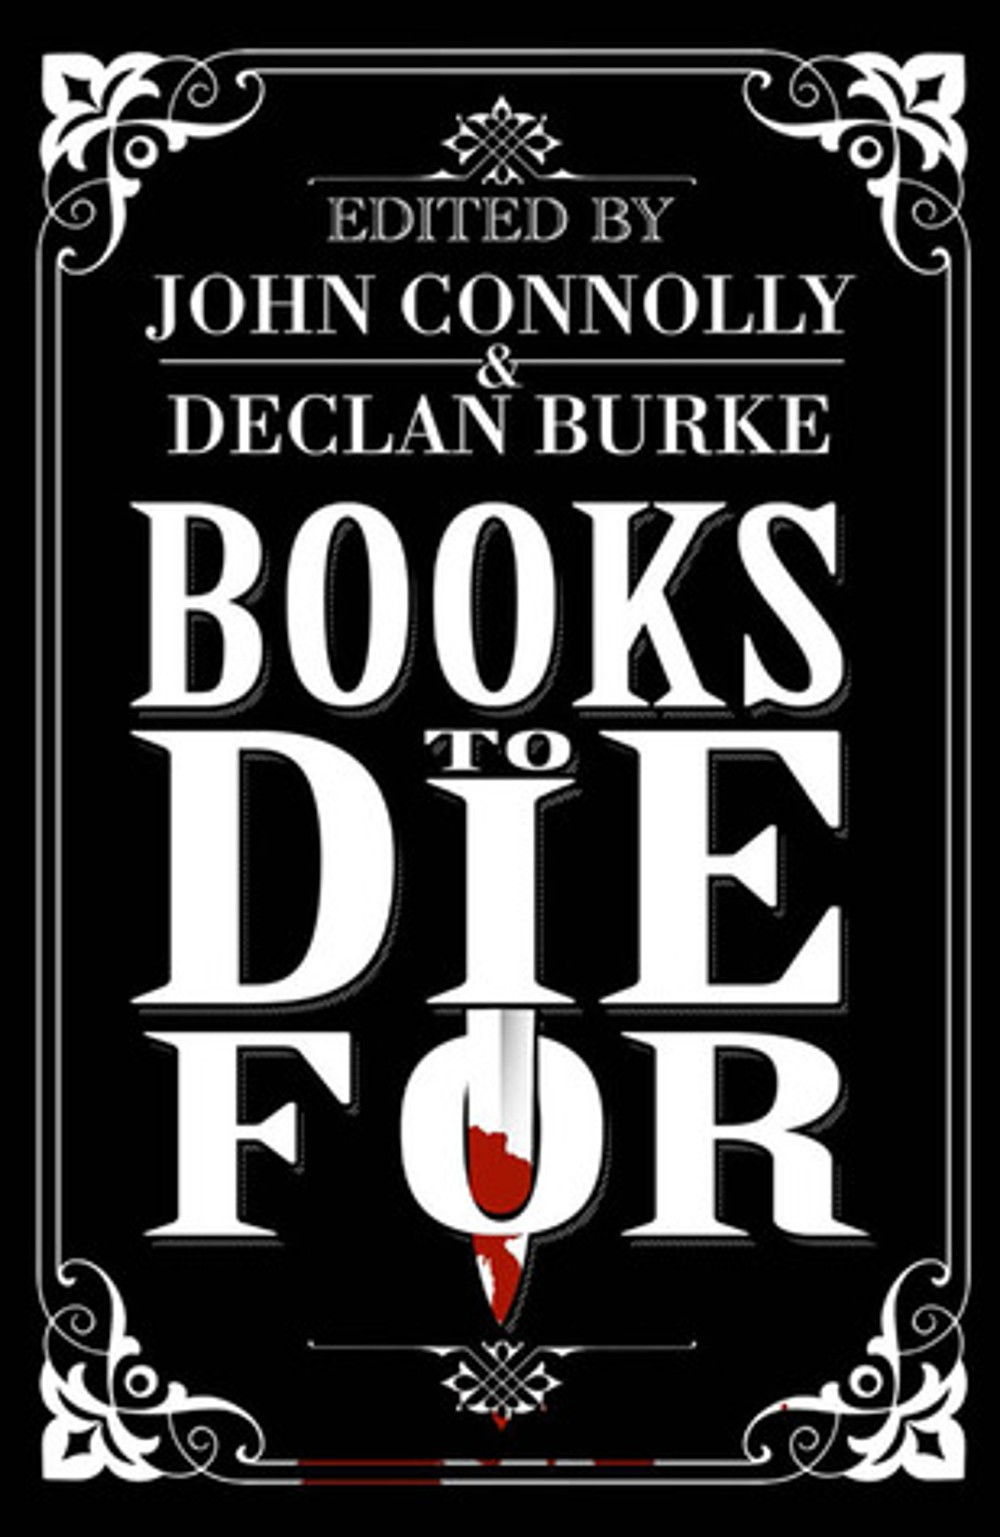 Books To Die For UK.jpg